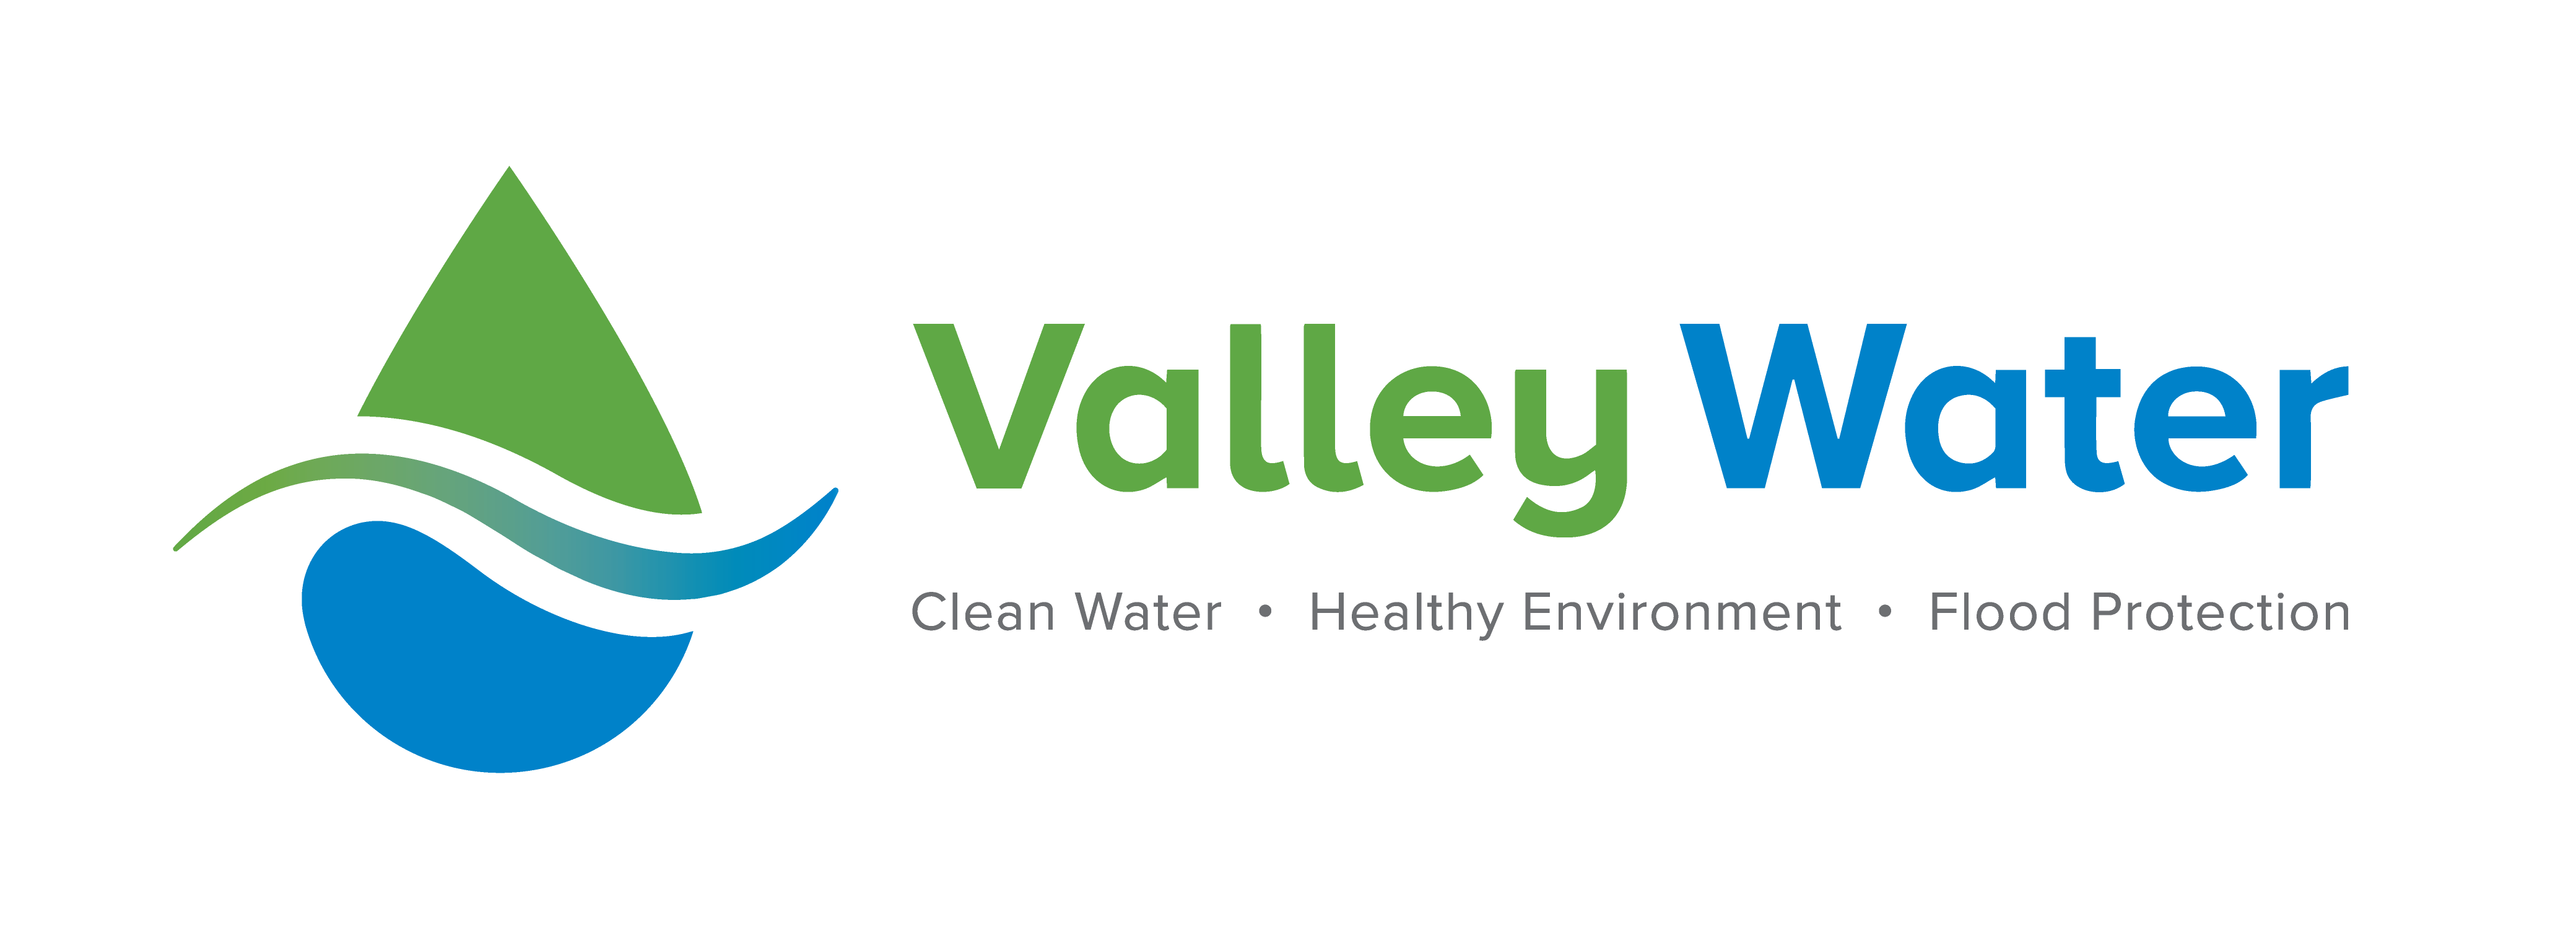 Valley Water